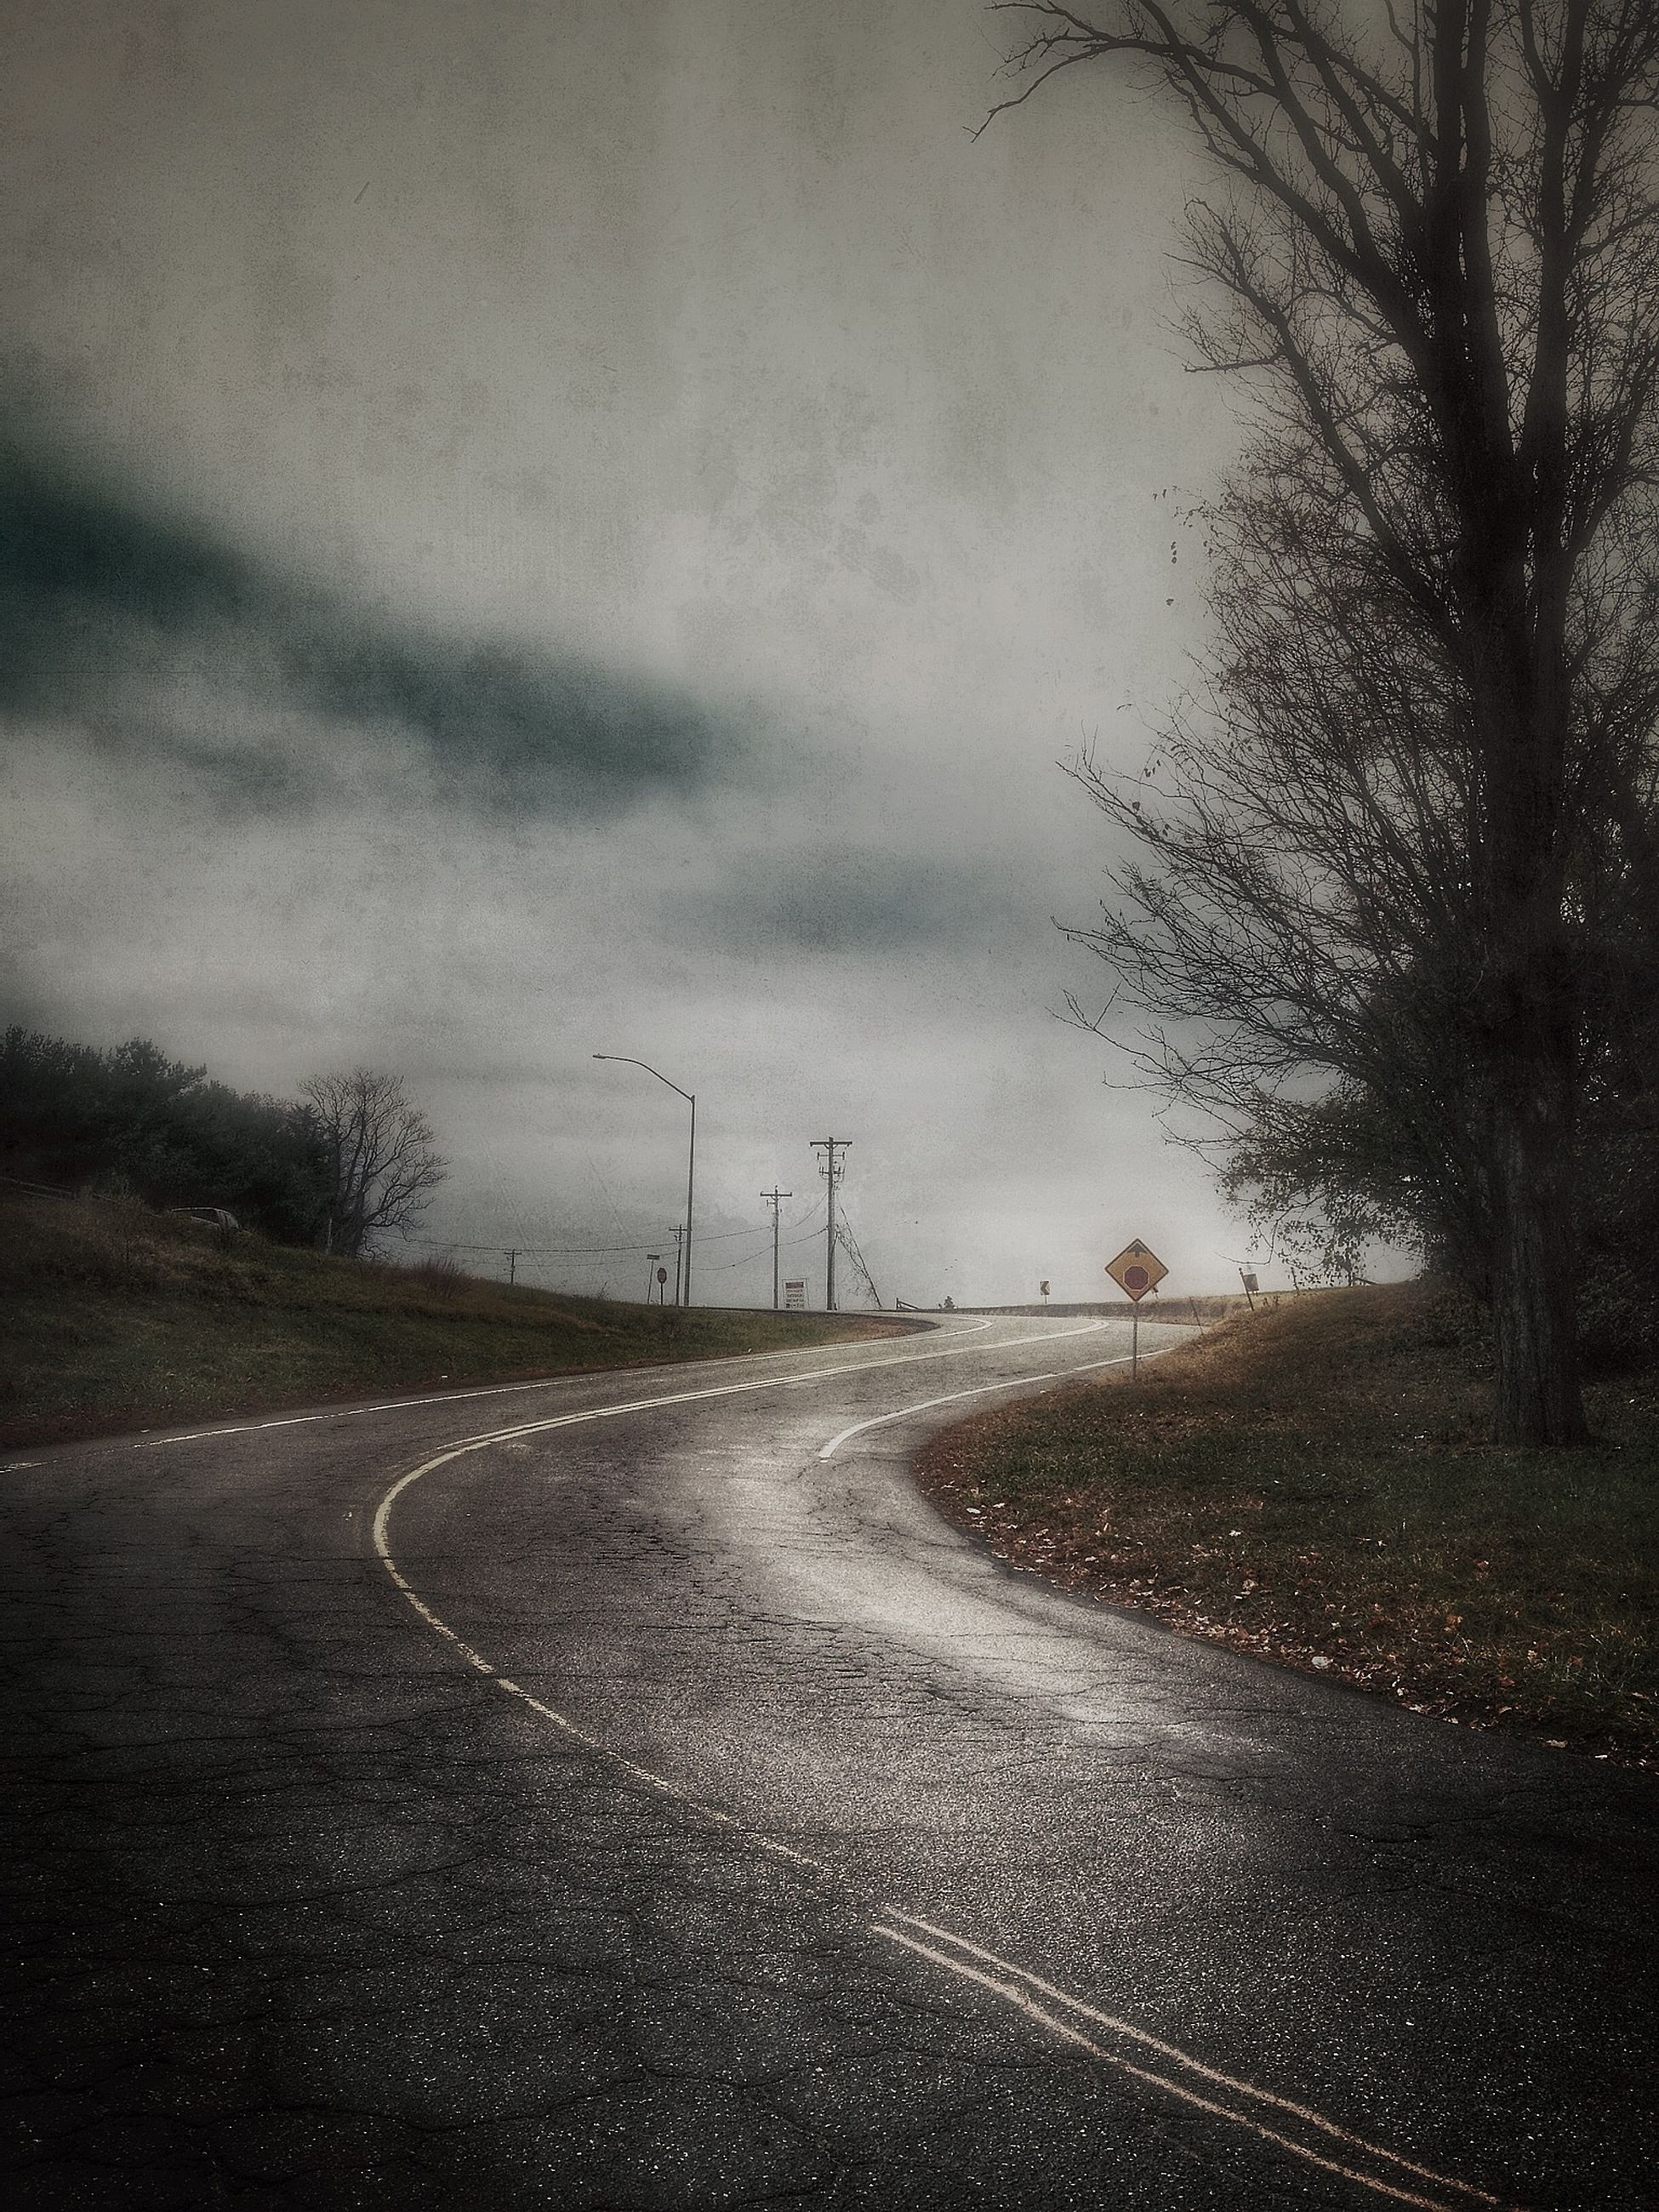 the way forward, road, transportation, road marking, sky, diminishing perspective, vanishing point, country road, empty road, cloud - sky, street, asphalt, cloudy, tree, empty, landscape, nature, tranquility, overcast, weather